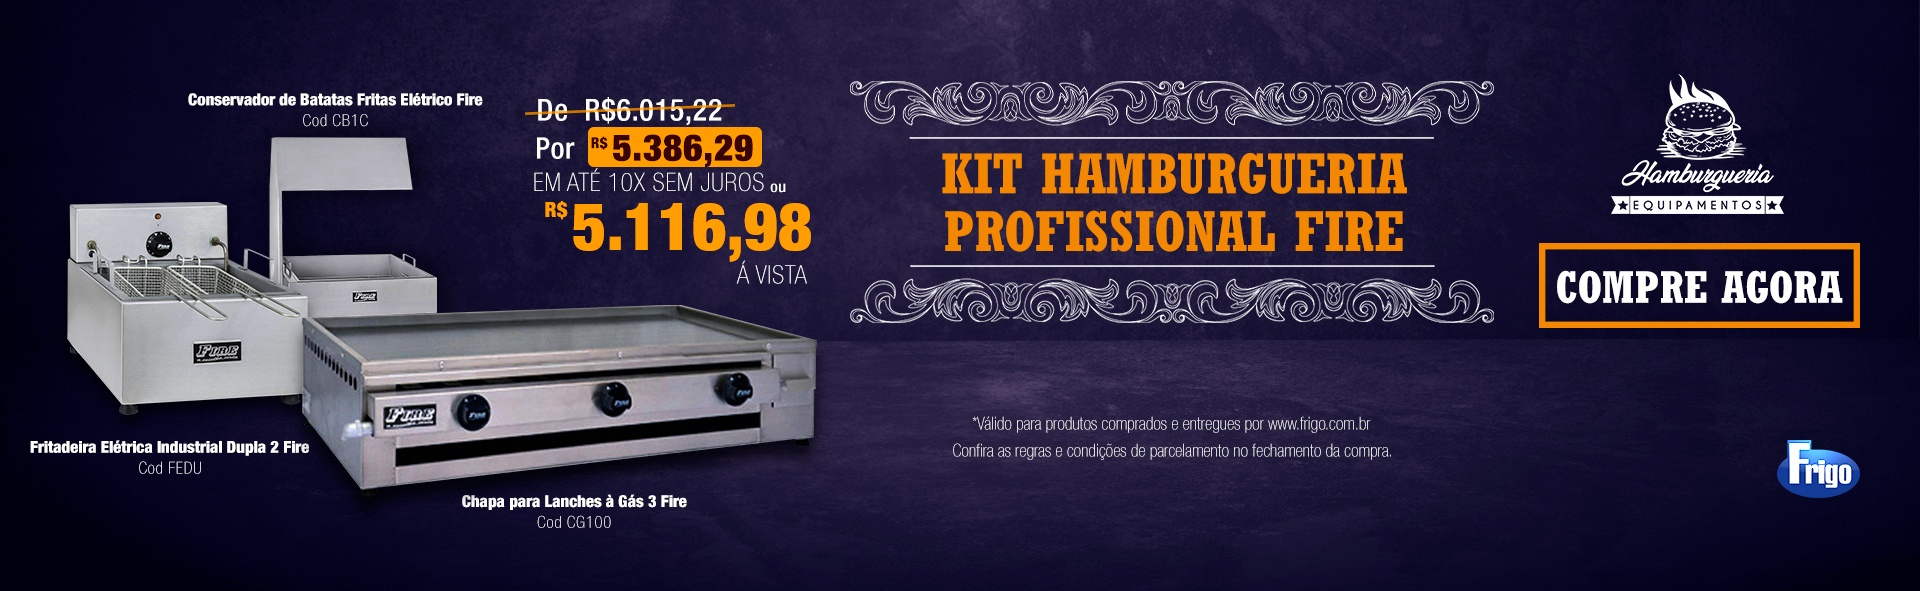 kit hamburgueria profisional fire